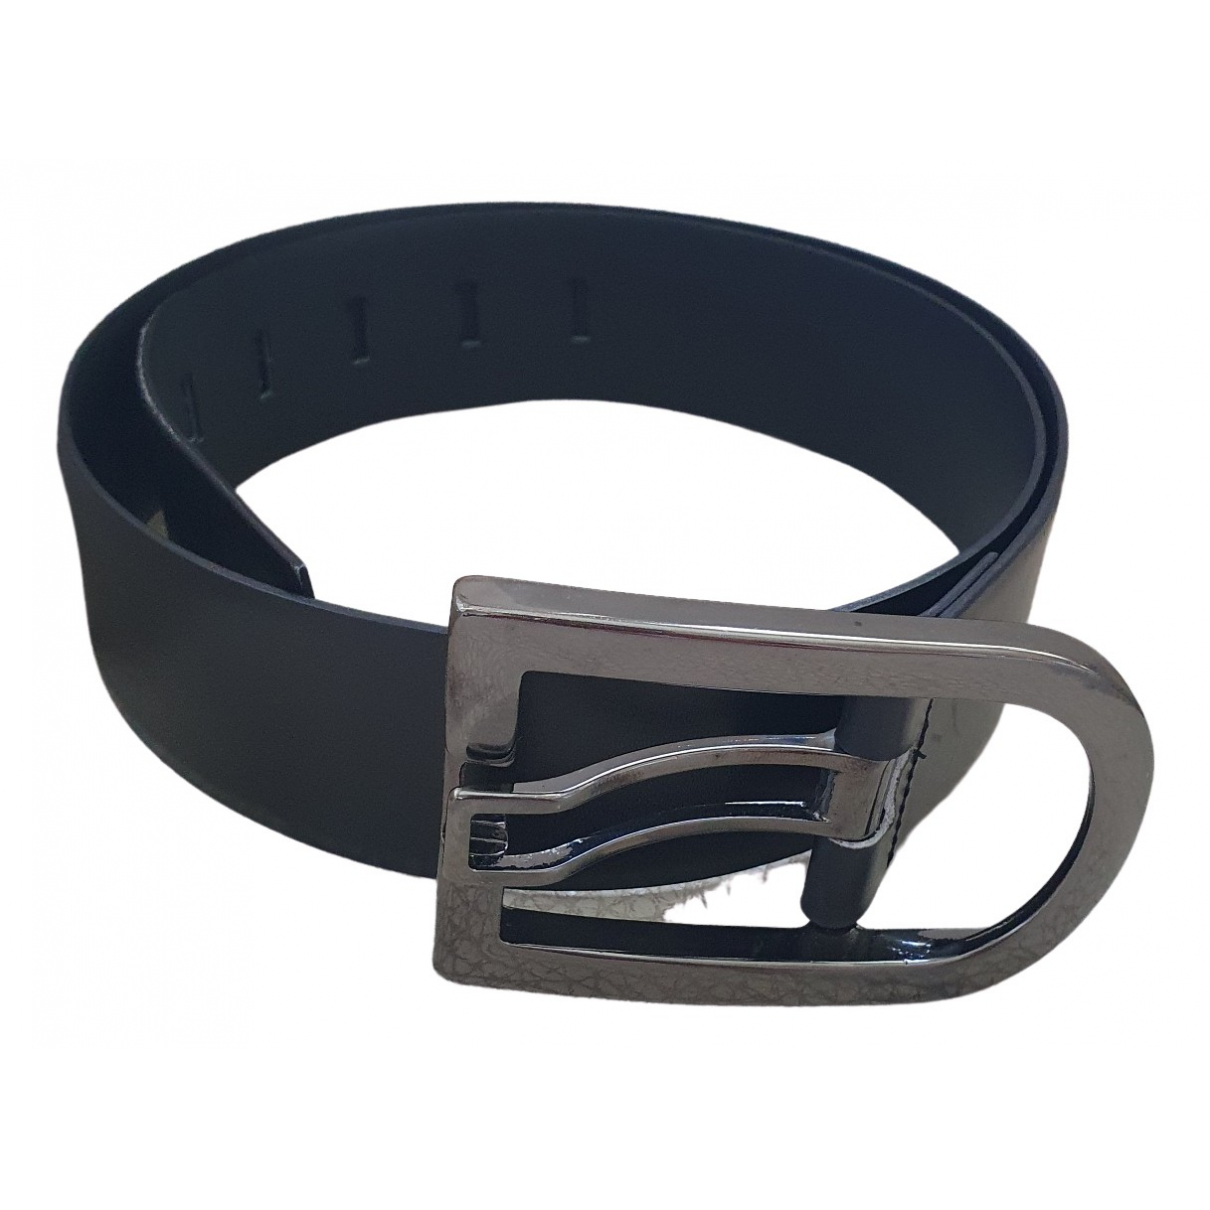 Marella \N Black Leather belt for Women S International